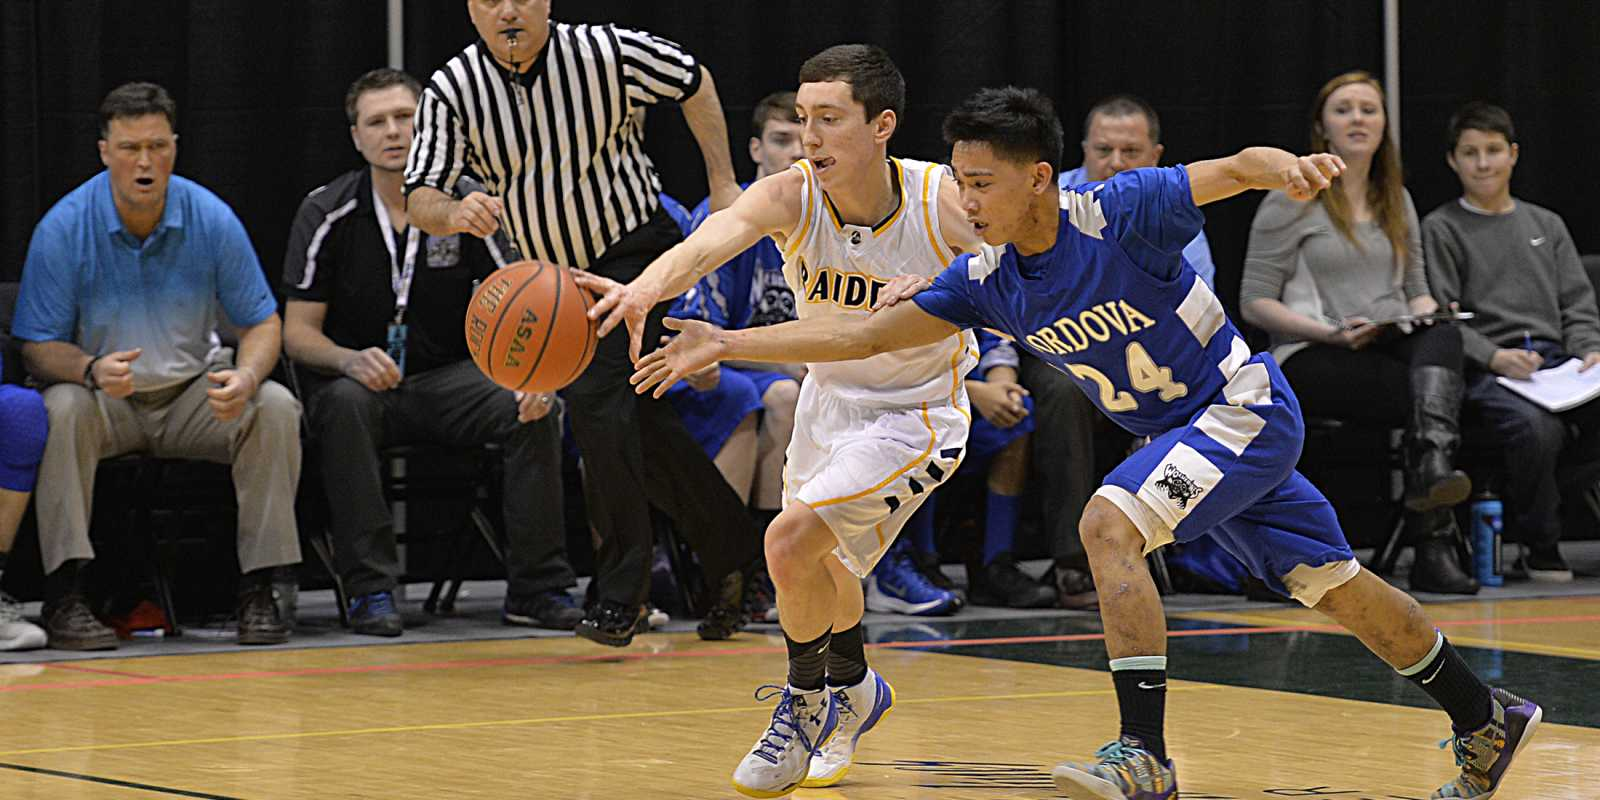 Players compete in Alaska's March Madness High School Basketball Tournament